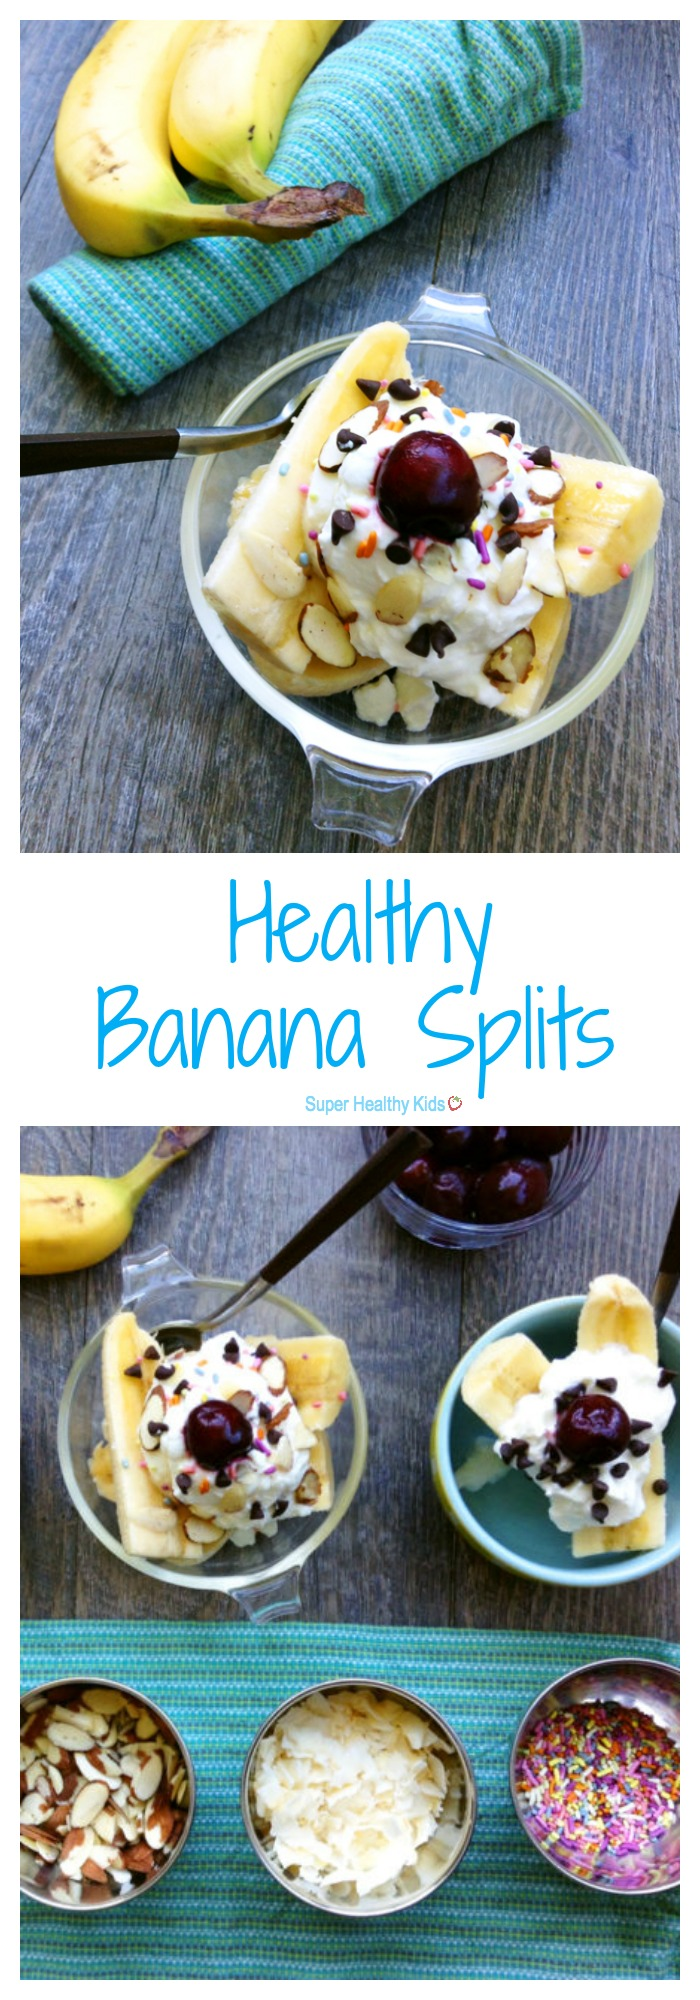 FOOD - Healthy Banana Splits. Turn a traditionally-decadent dessert into a healthful snack with whole milk yogurt, fruit, seeds and dark chocolate chips! http://www.superhealthykids.com/kids-favorite-healthy-banana-split/